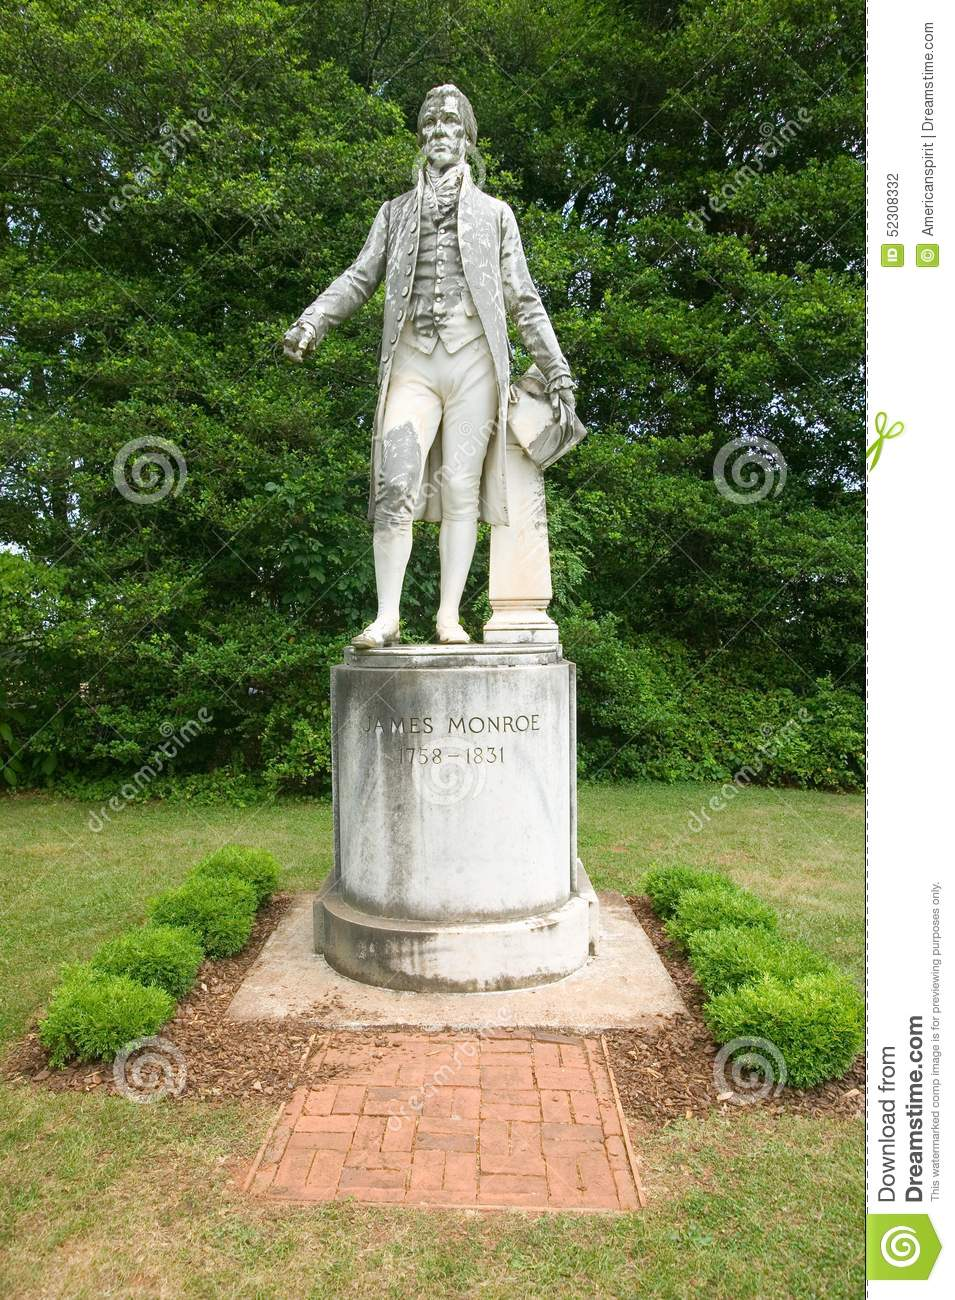 Statue of James Monroe located on Ash Lawn-Highland grounds